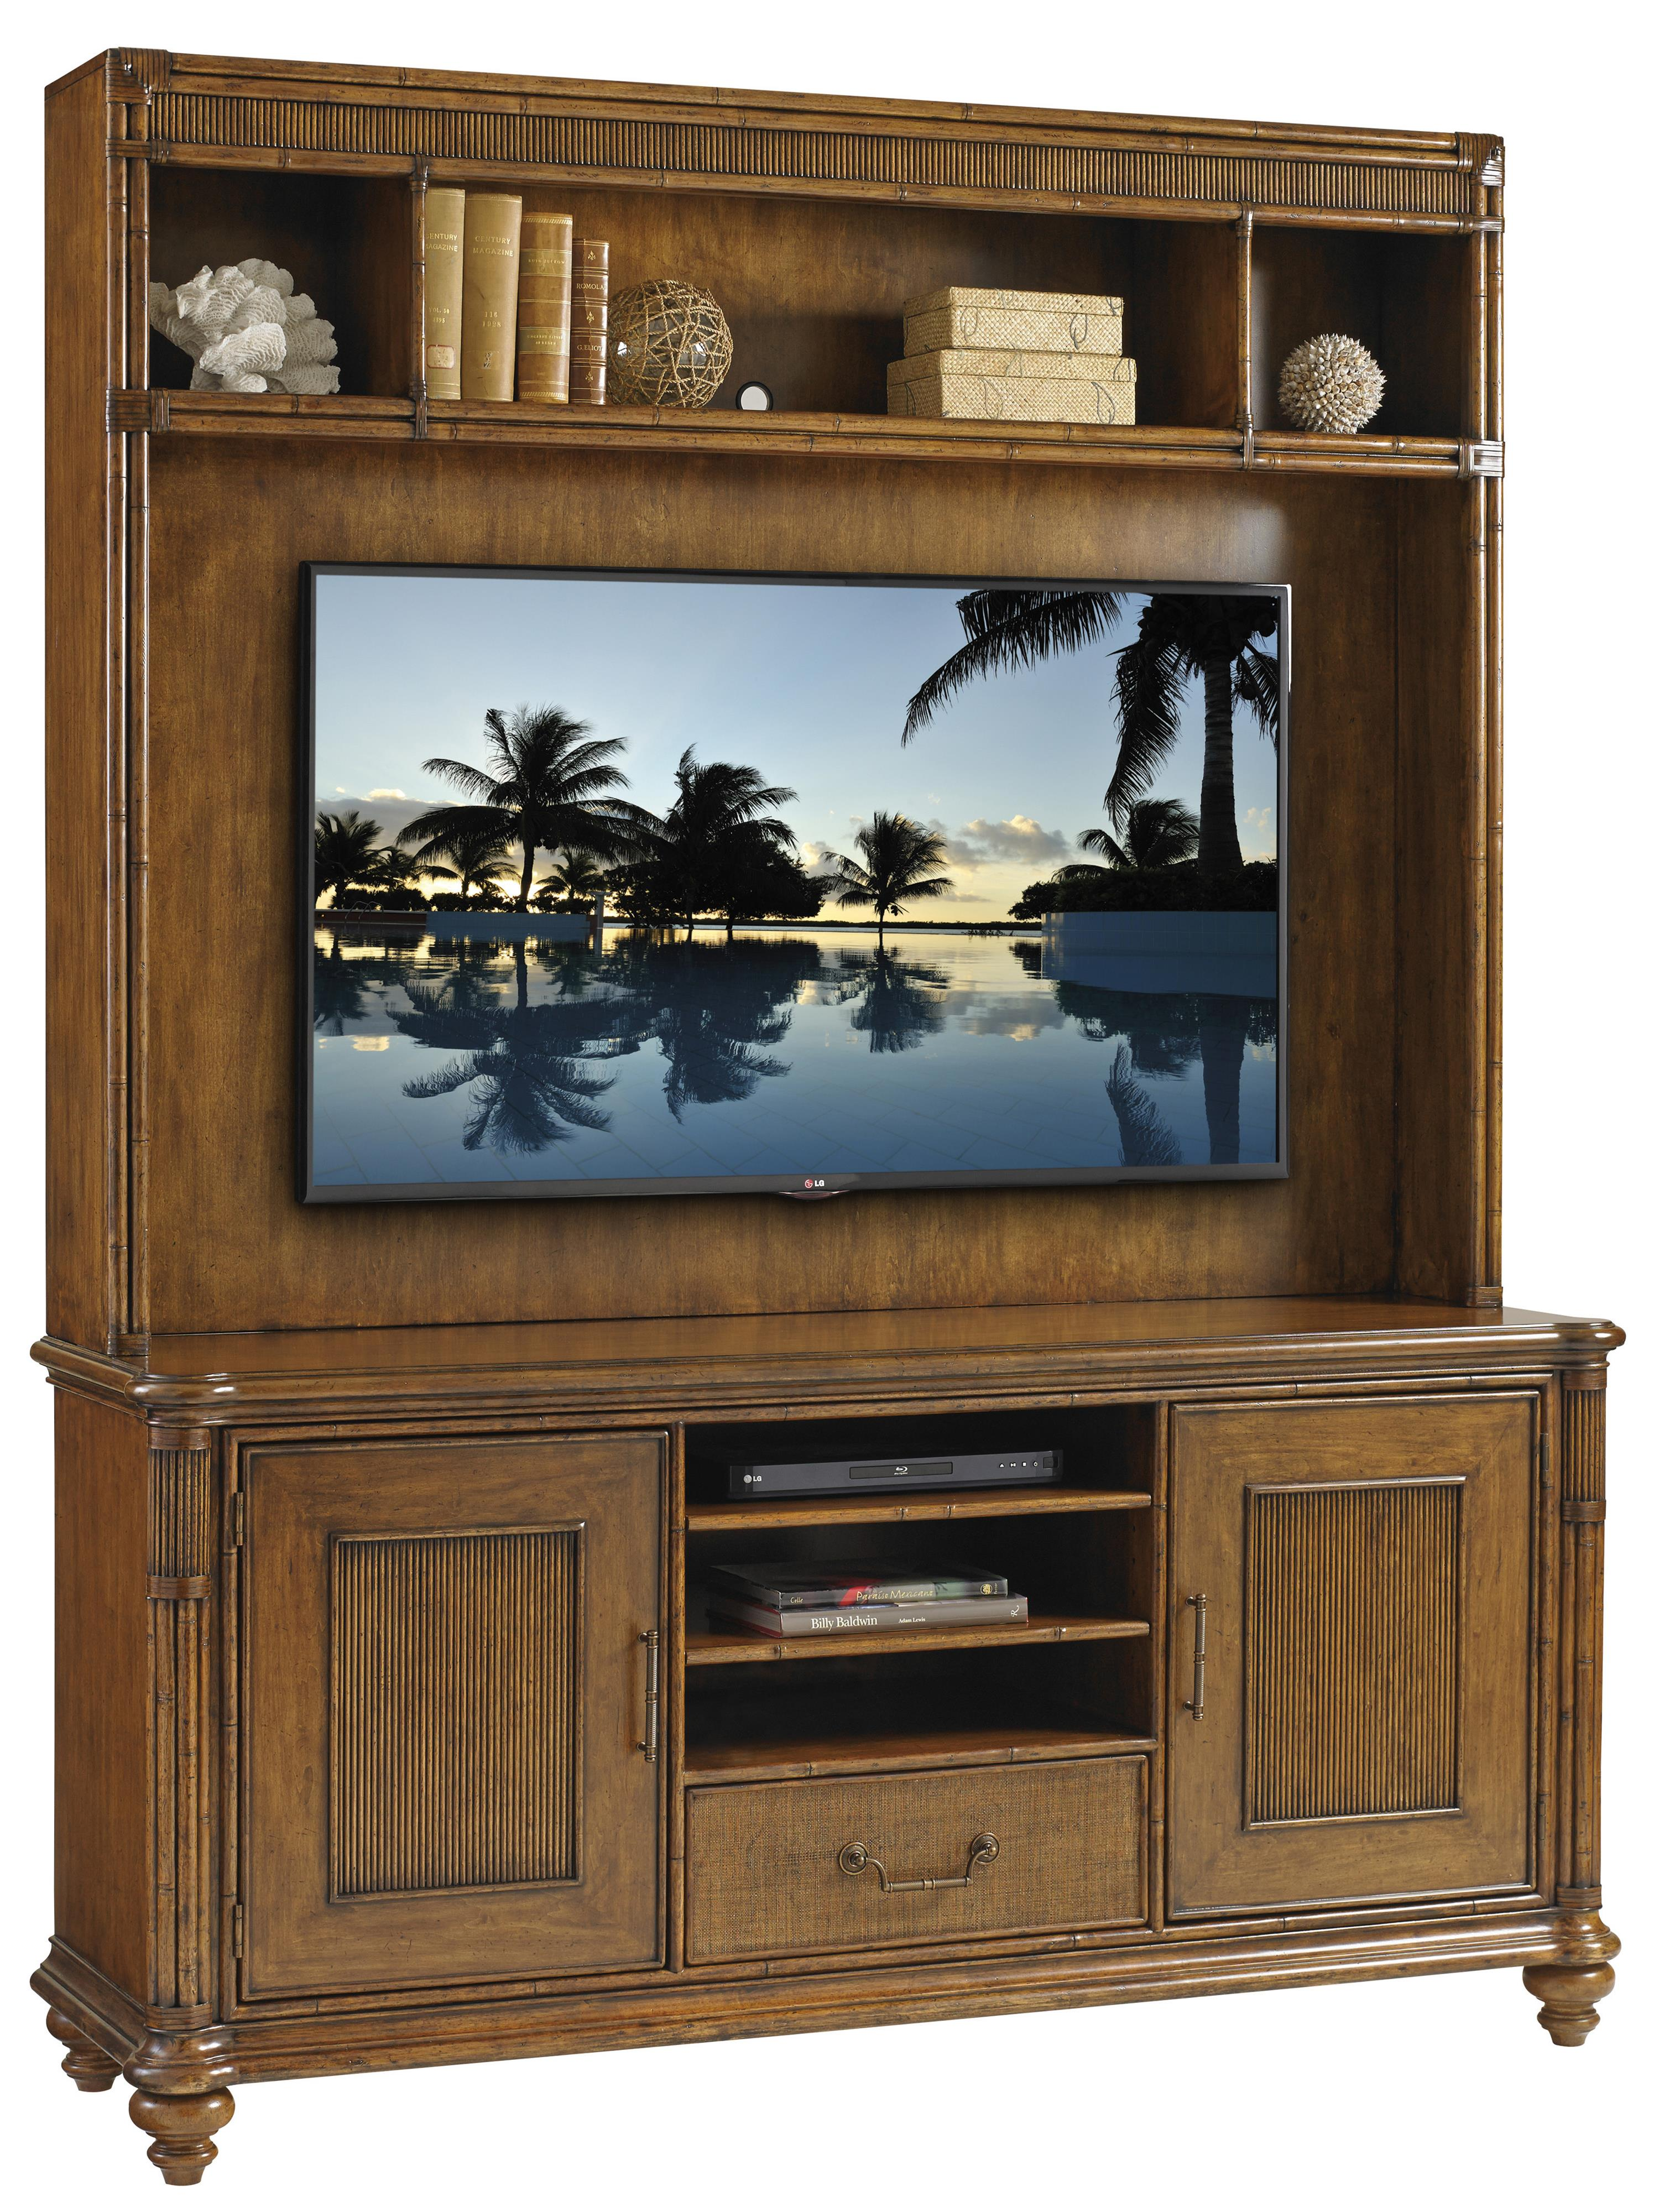 Bali Hai Pelican Cay Media Console and Hutch by Tommy Bahama Home at Baer's Furniture